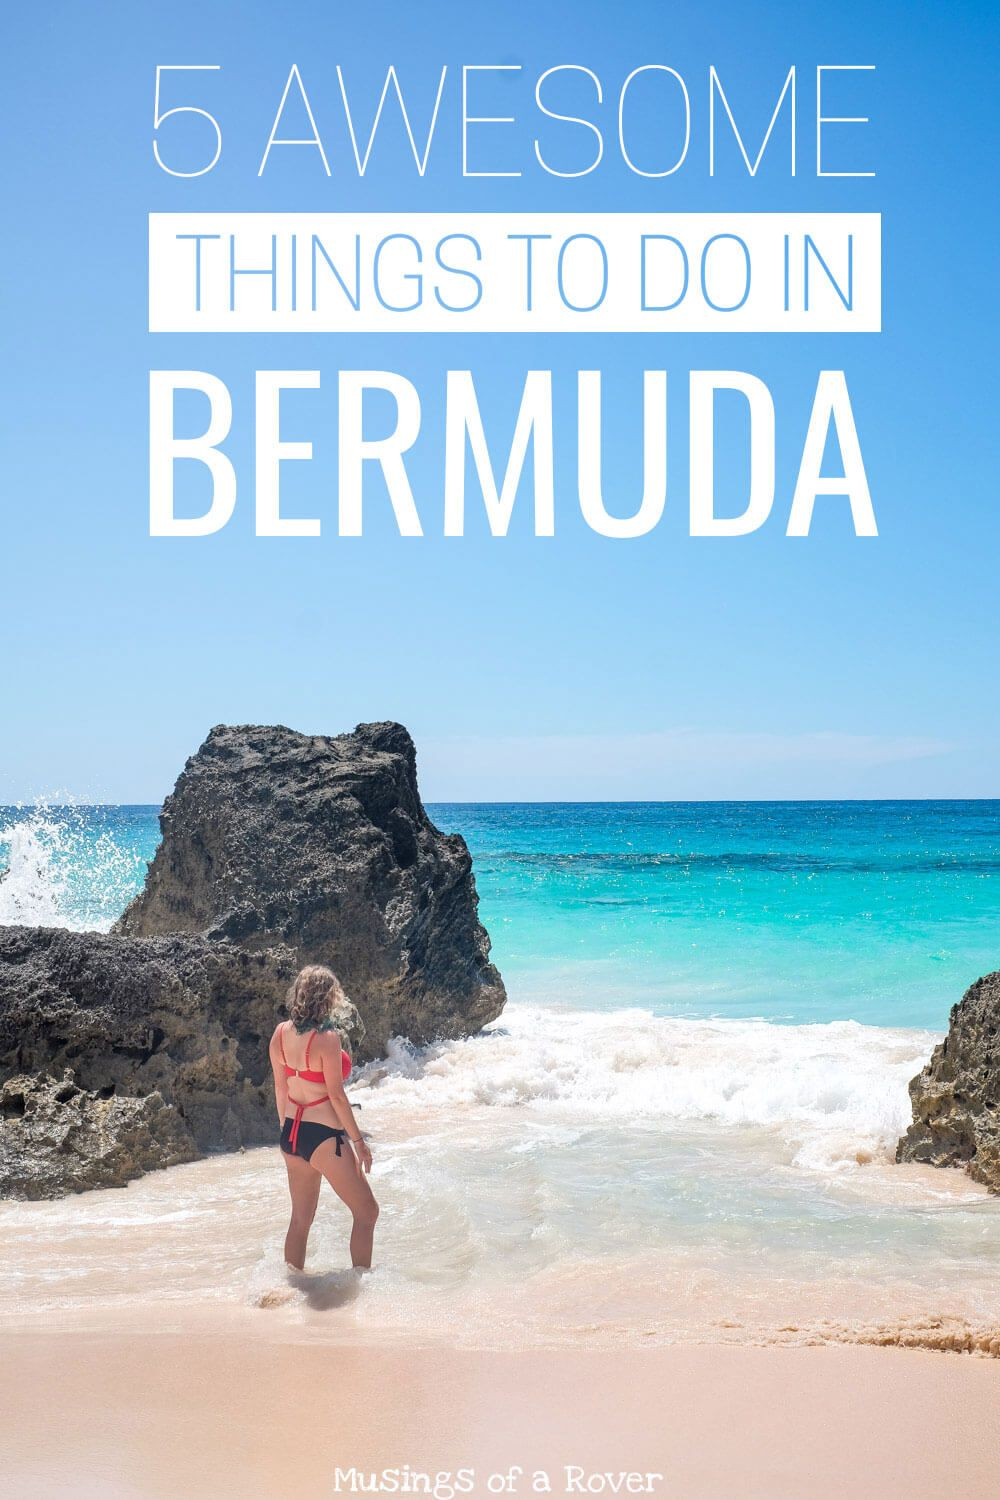 There are a number of things to do in Bermuda. Here are the top 5 must-dos you shouldn't miss including pink beaches, renting a scooter or an electric car, going scuba diving or snorkeling at Church Bay or Tobacco Bay, visiting Gills Hill Lighthouse or Fort St. Catherine, and a day trip to St. George!